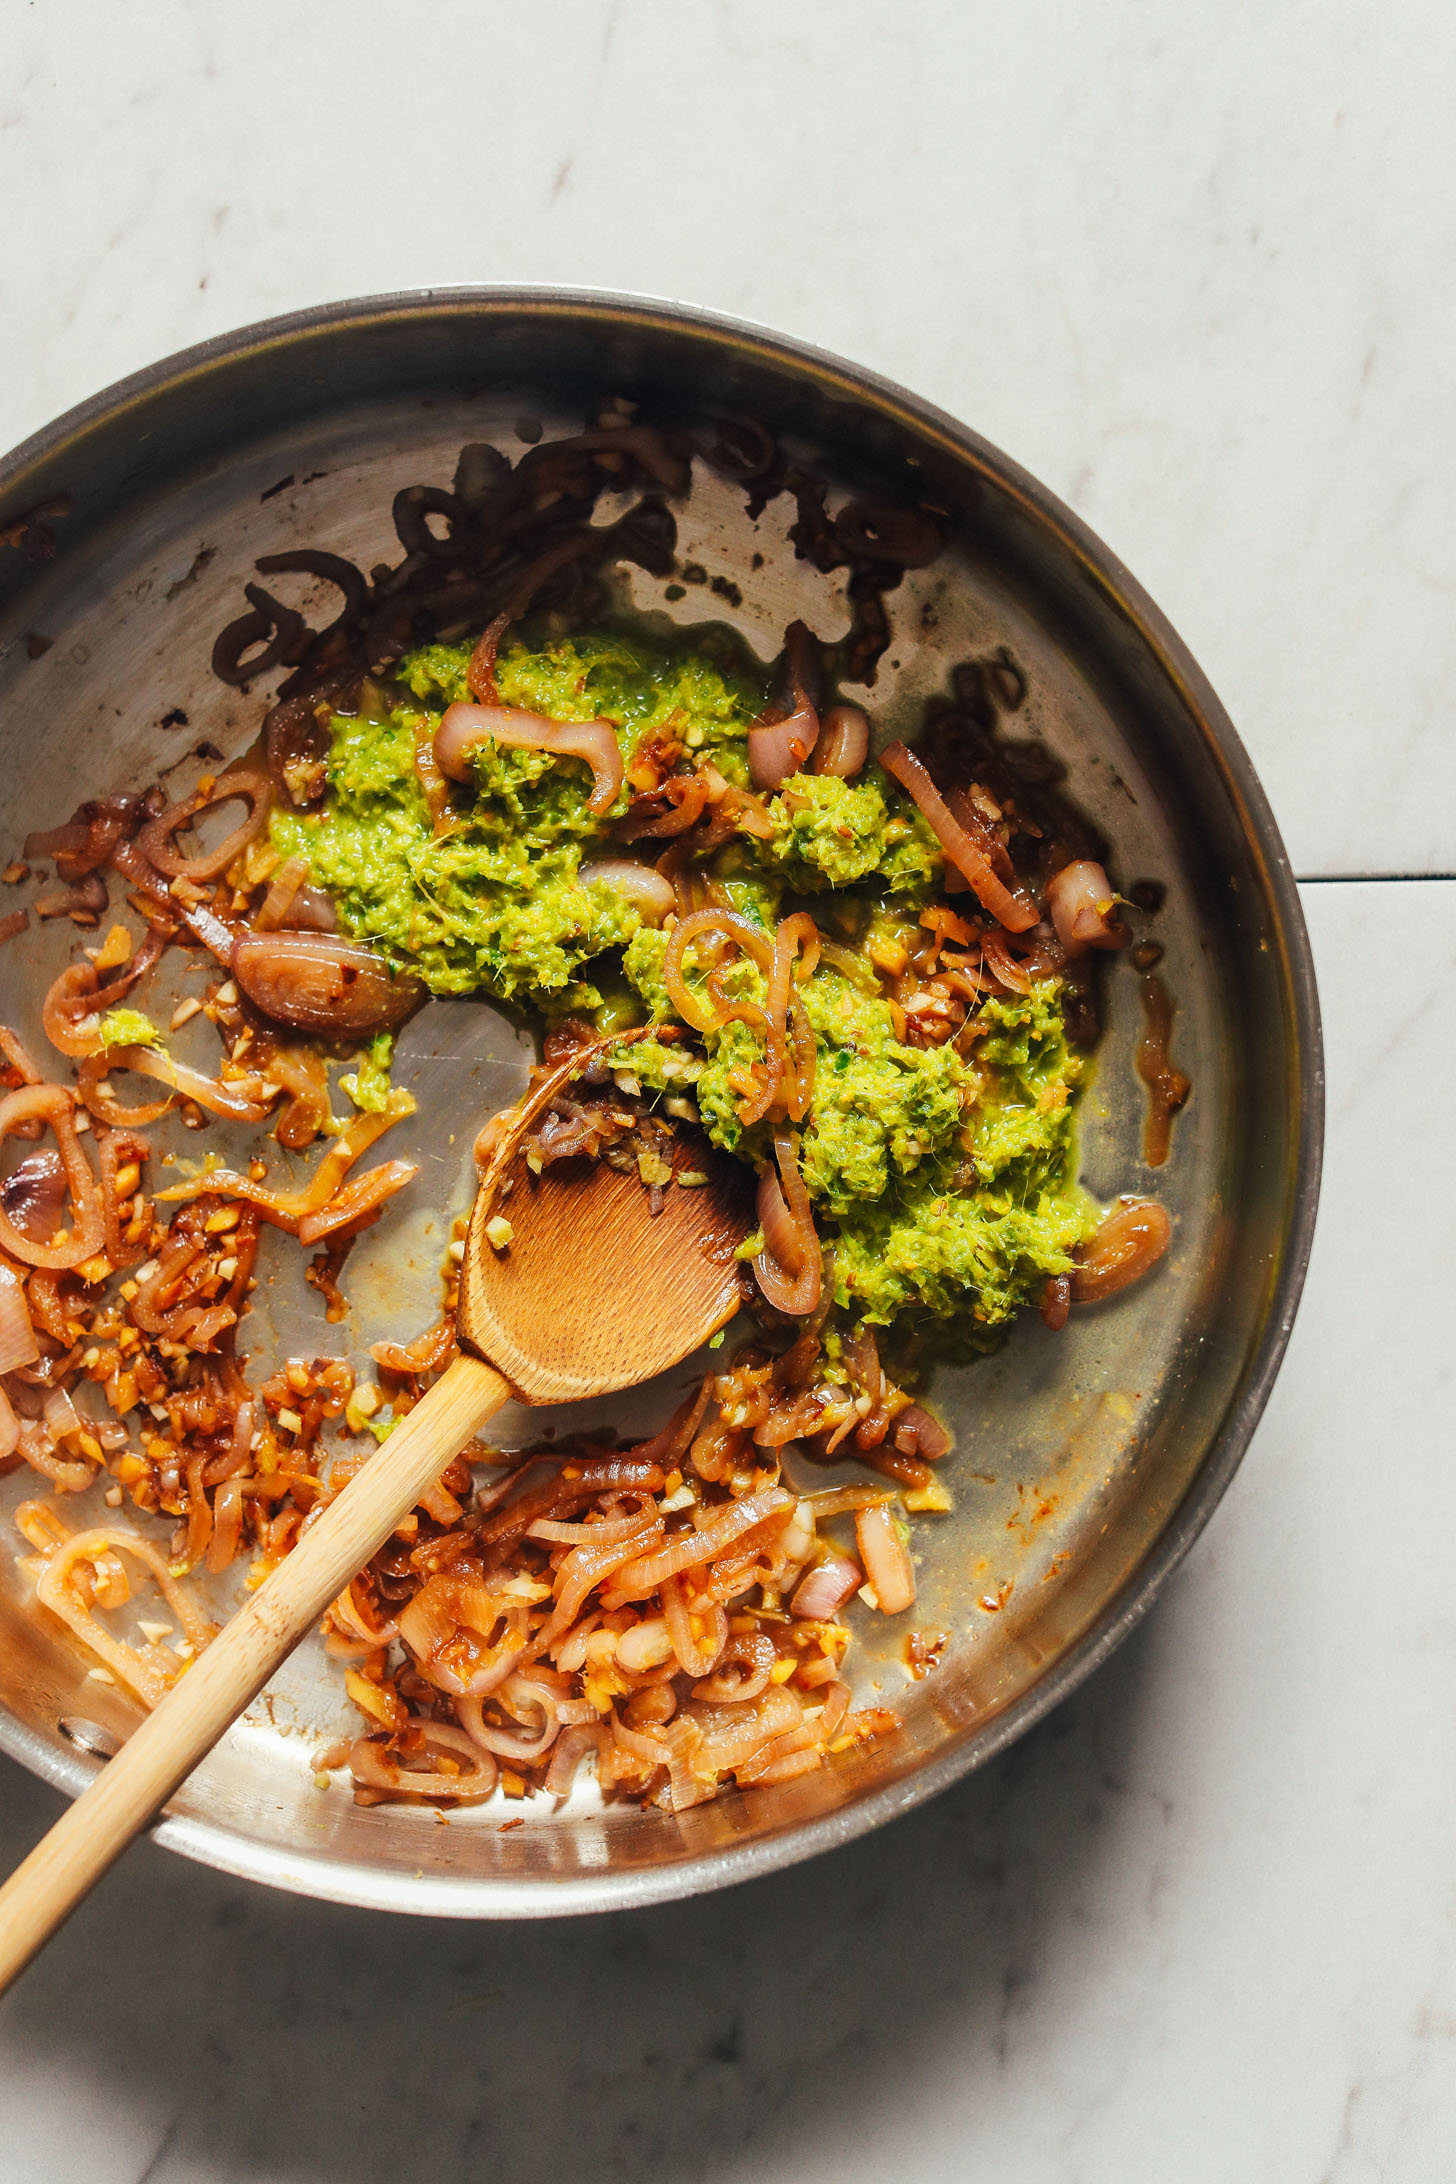 Overhead image of a pan with sautéed onion, garlic, and green curry paste with a wooden spoon stirring the ingredients